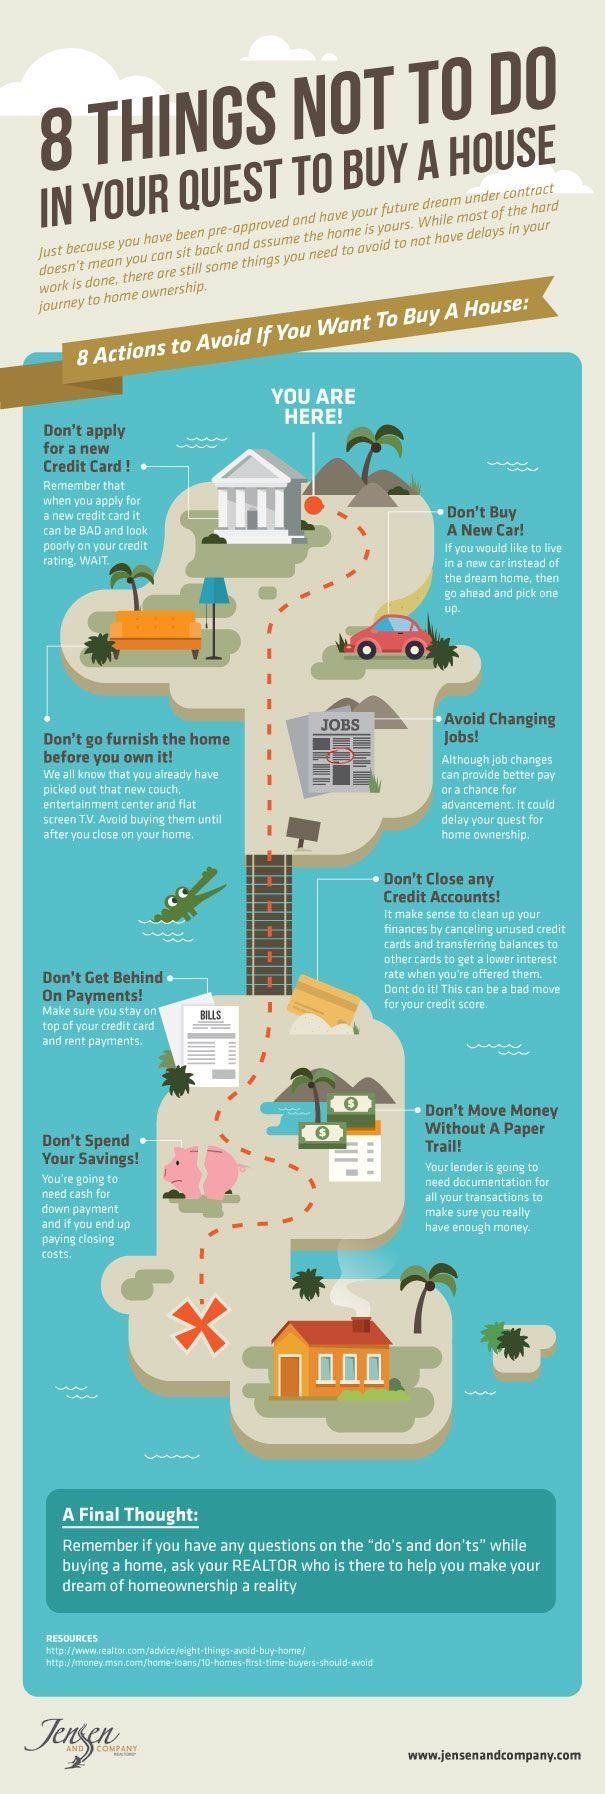 8 Things Not To Do When Home Buying